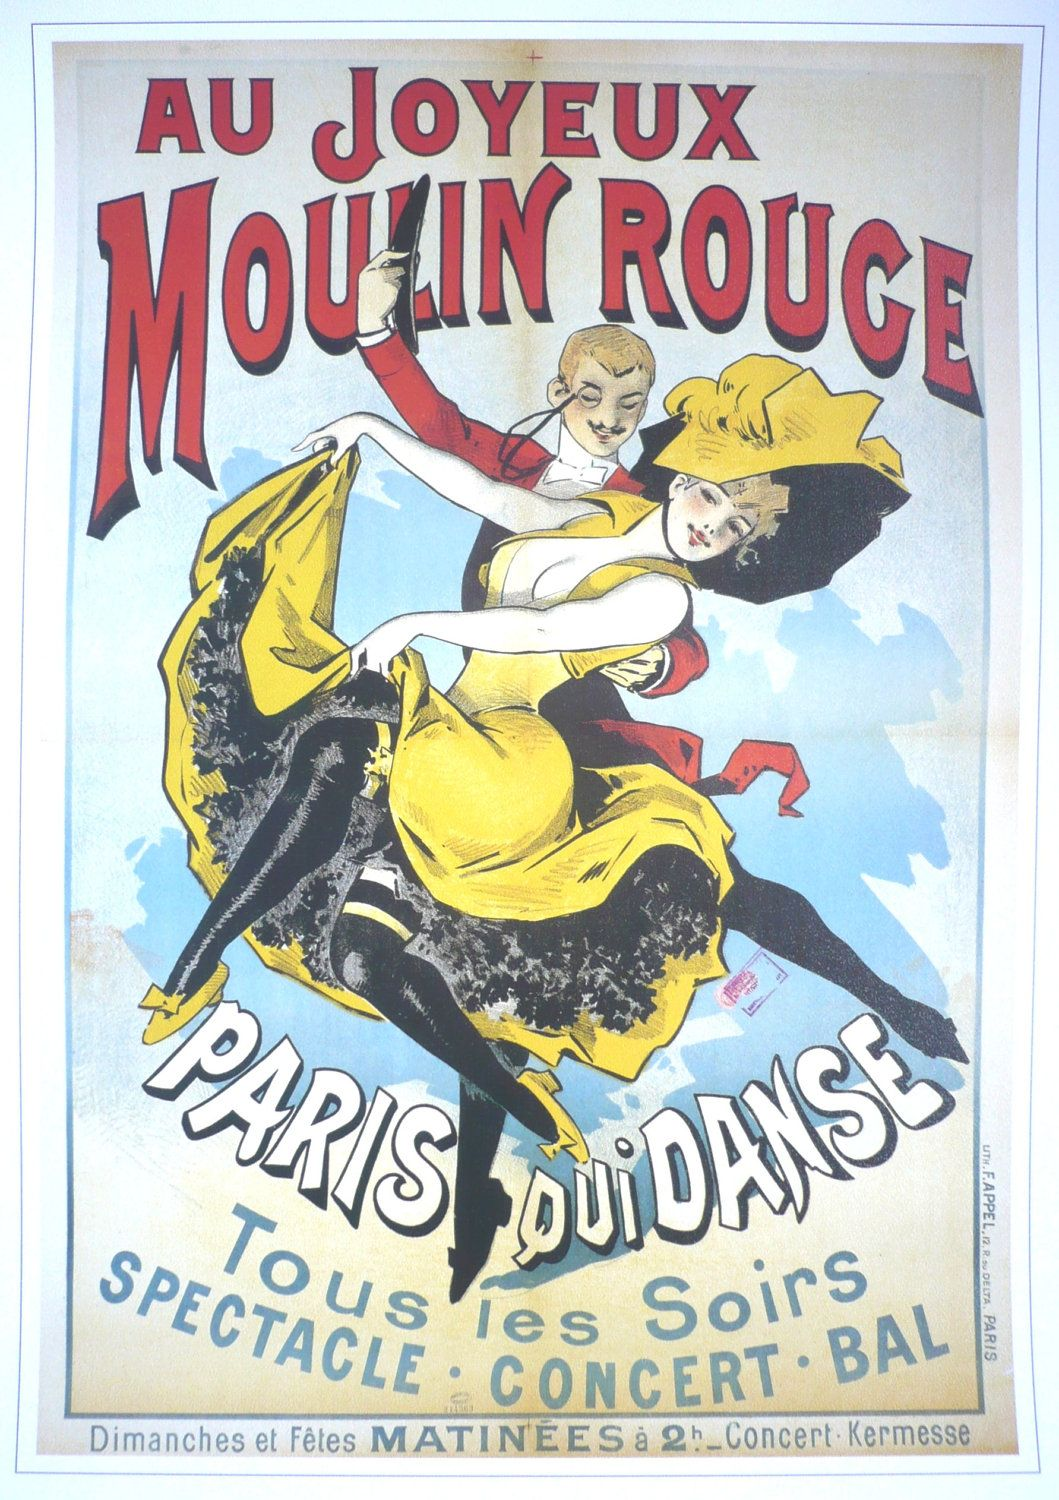 vintage moulin rouge posters - Google Search | Mendota ...